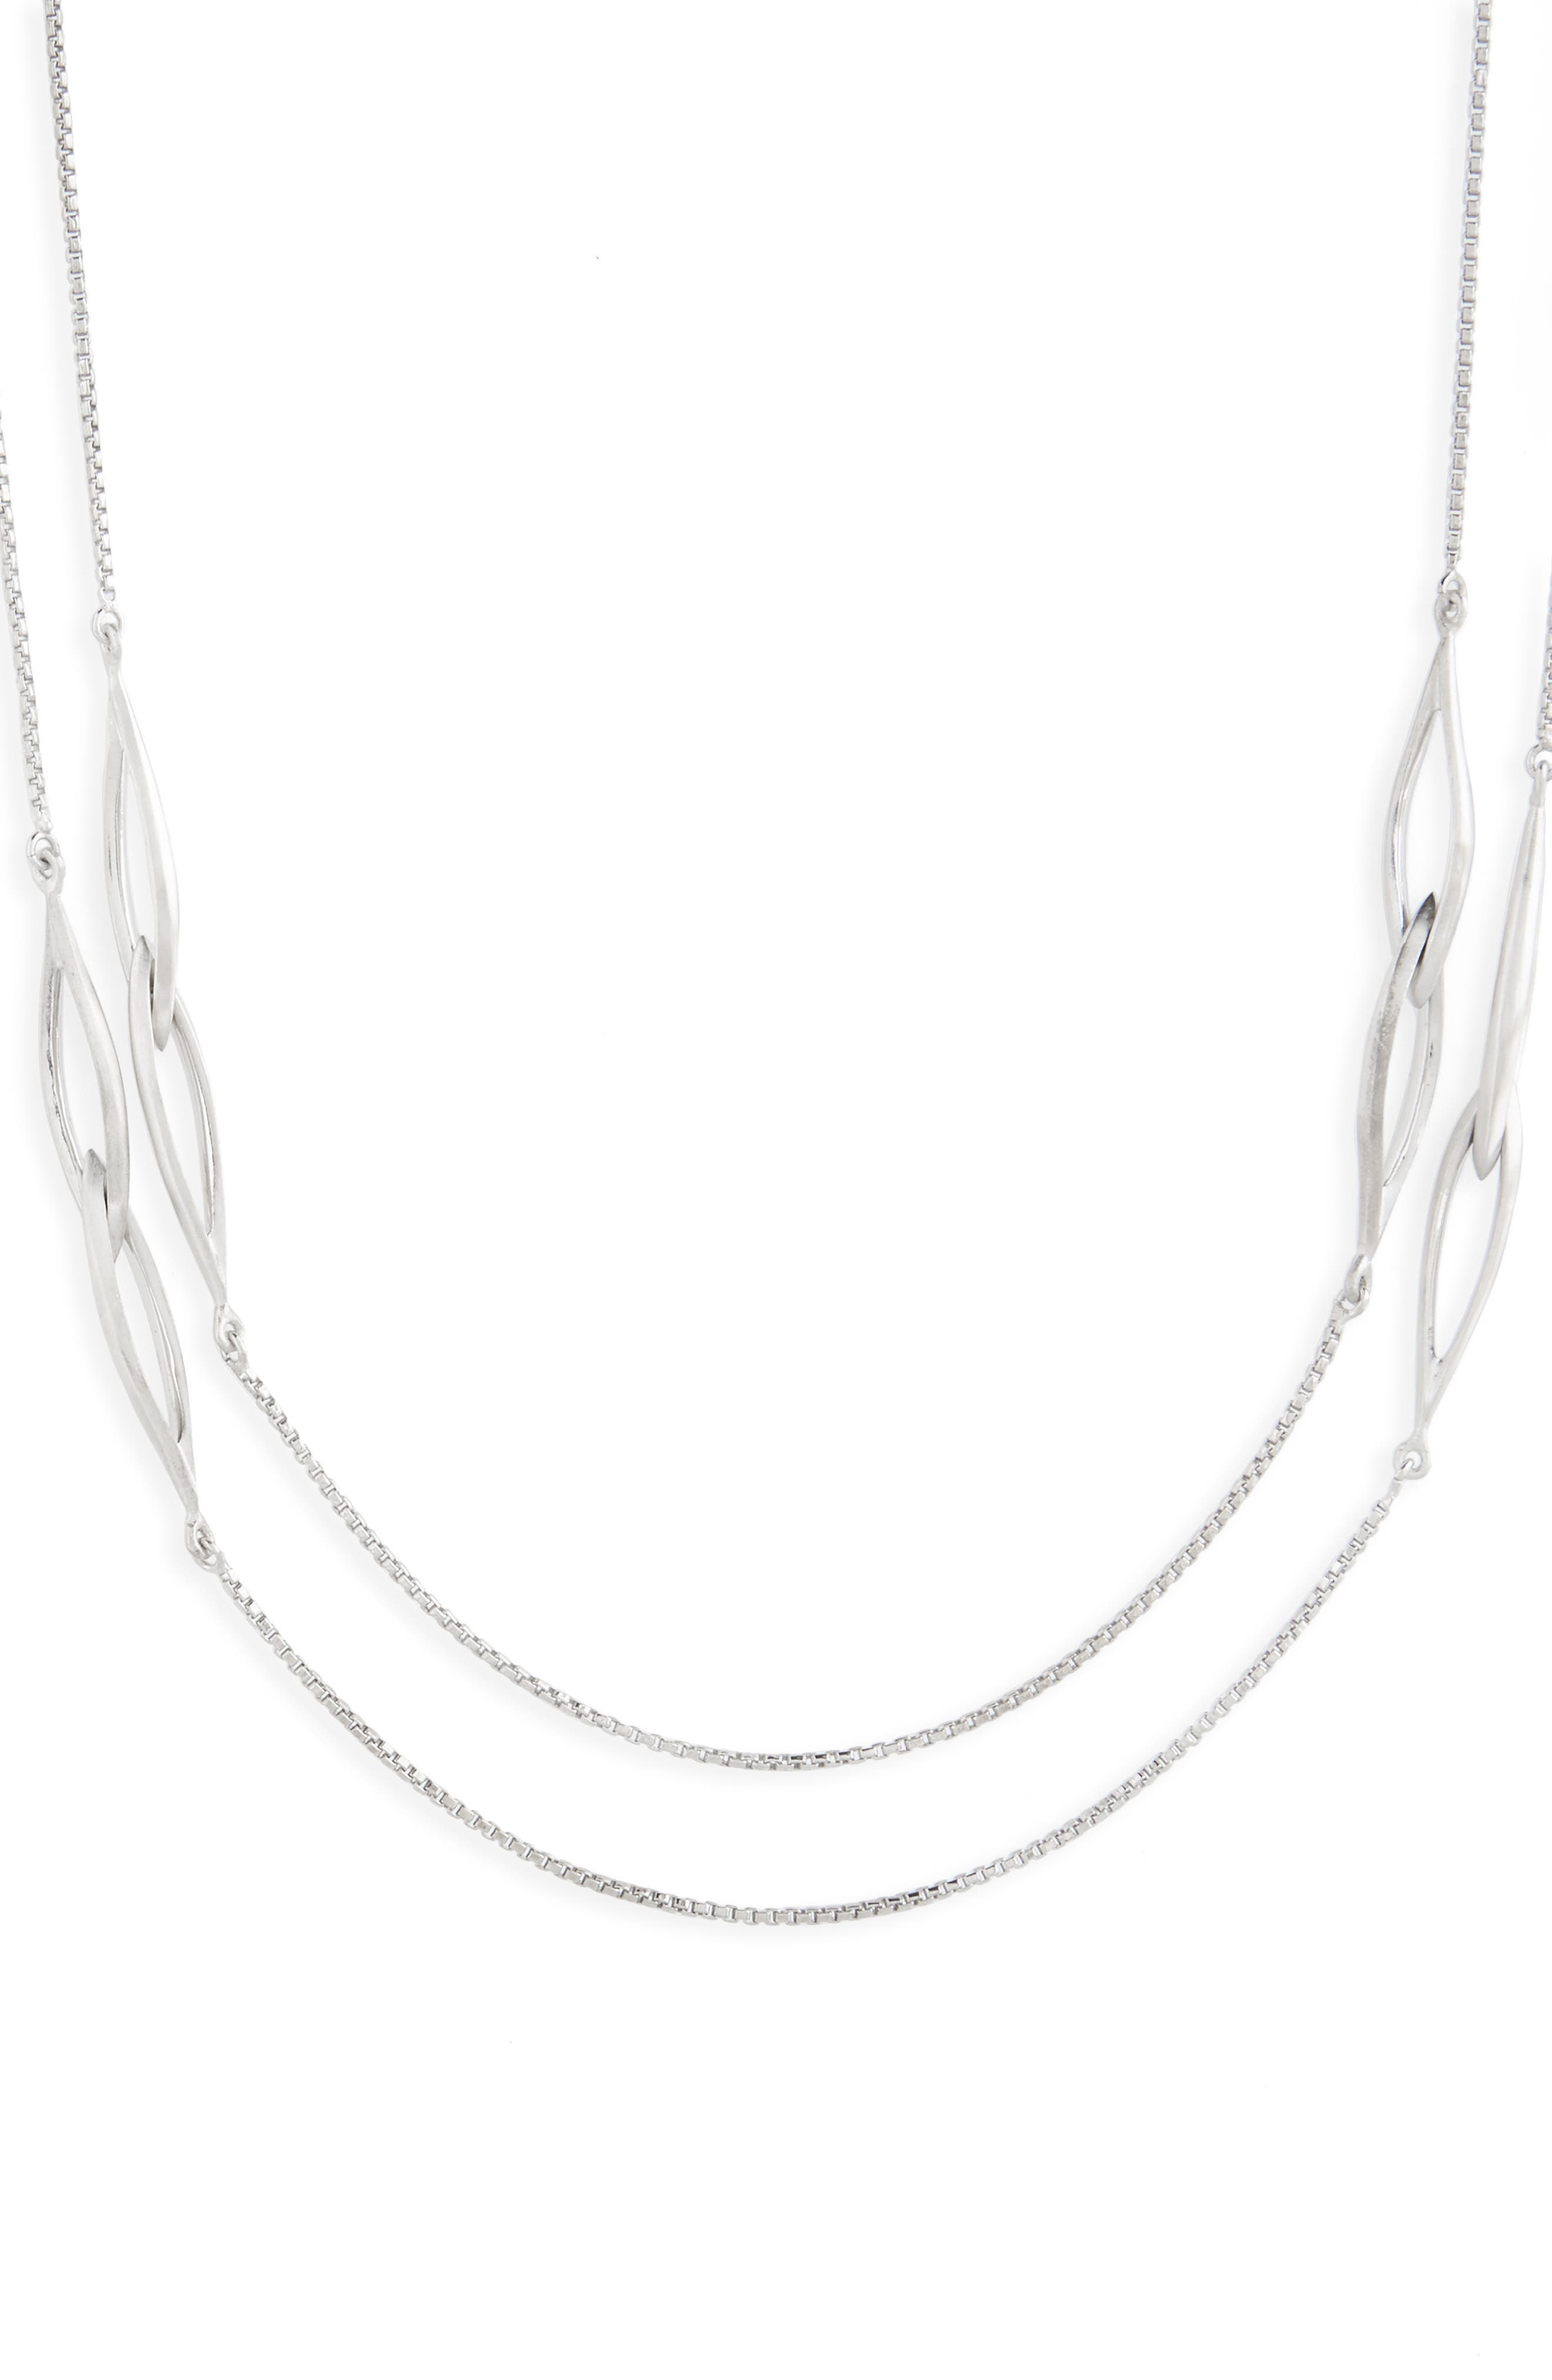 Entwined Station Necklace,                             Alternate thumbnail 3, color,                             040